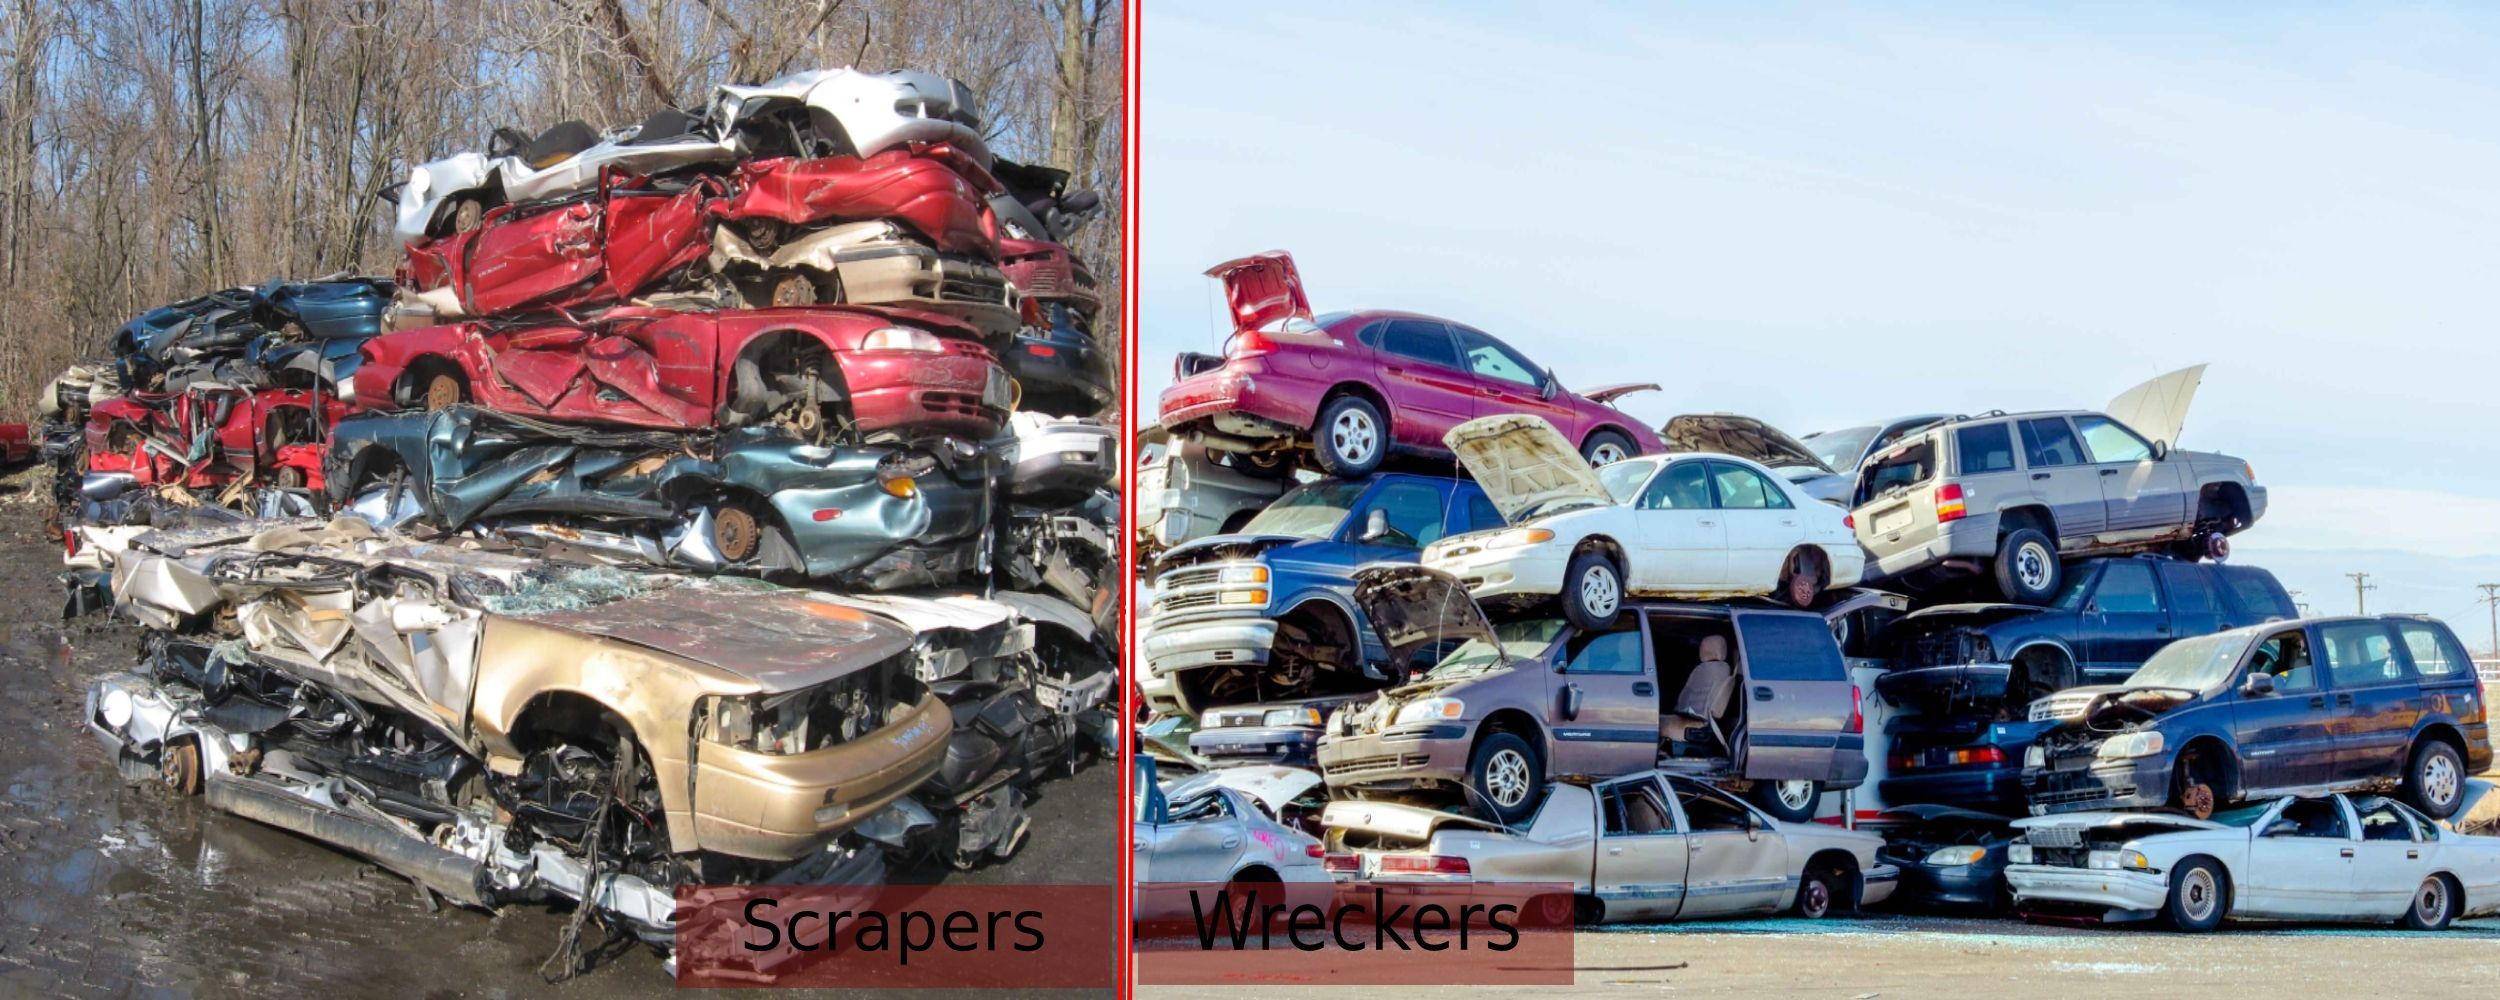 What's the Basic Difference Between Scrapers and Wreckers